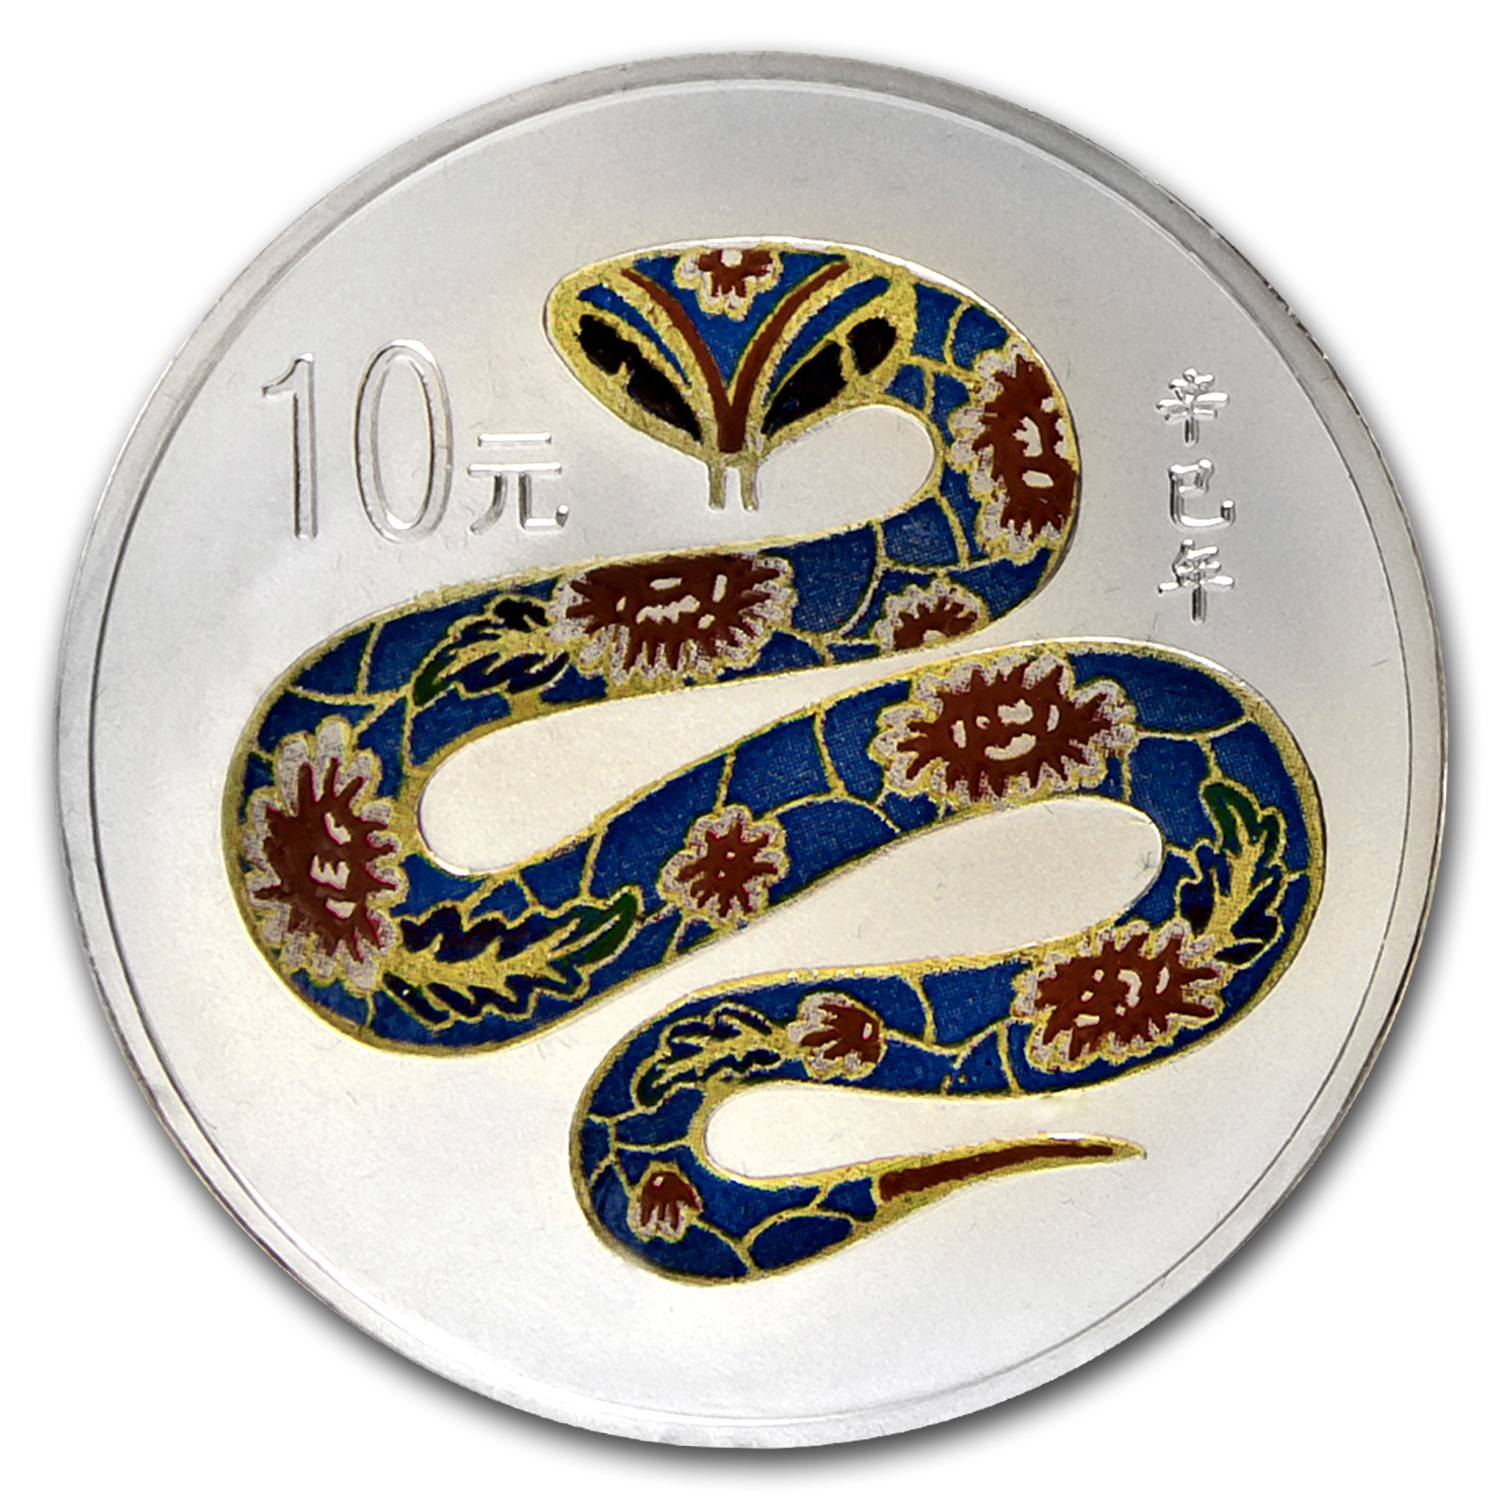 2001 1 oz Silver Chinese Year of the Snake (Colored, w/Box, COA)